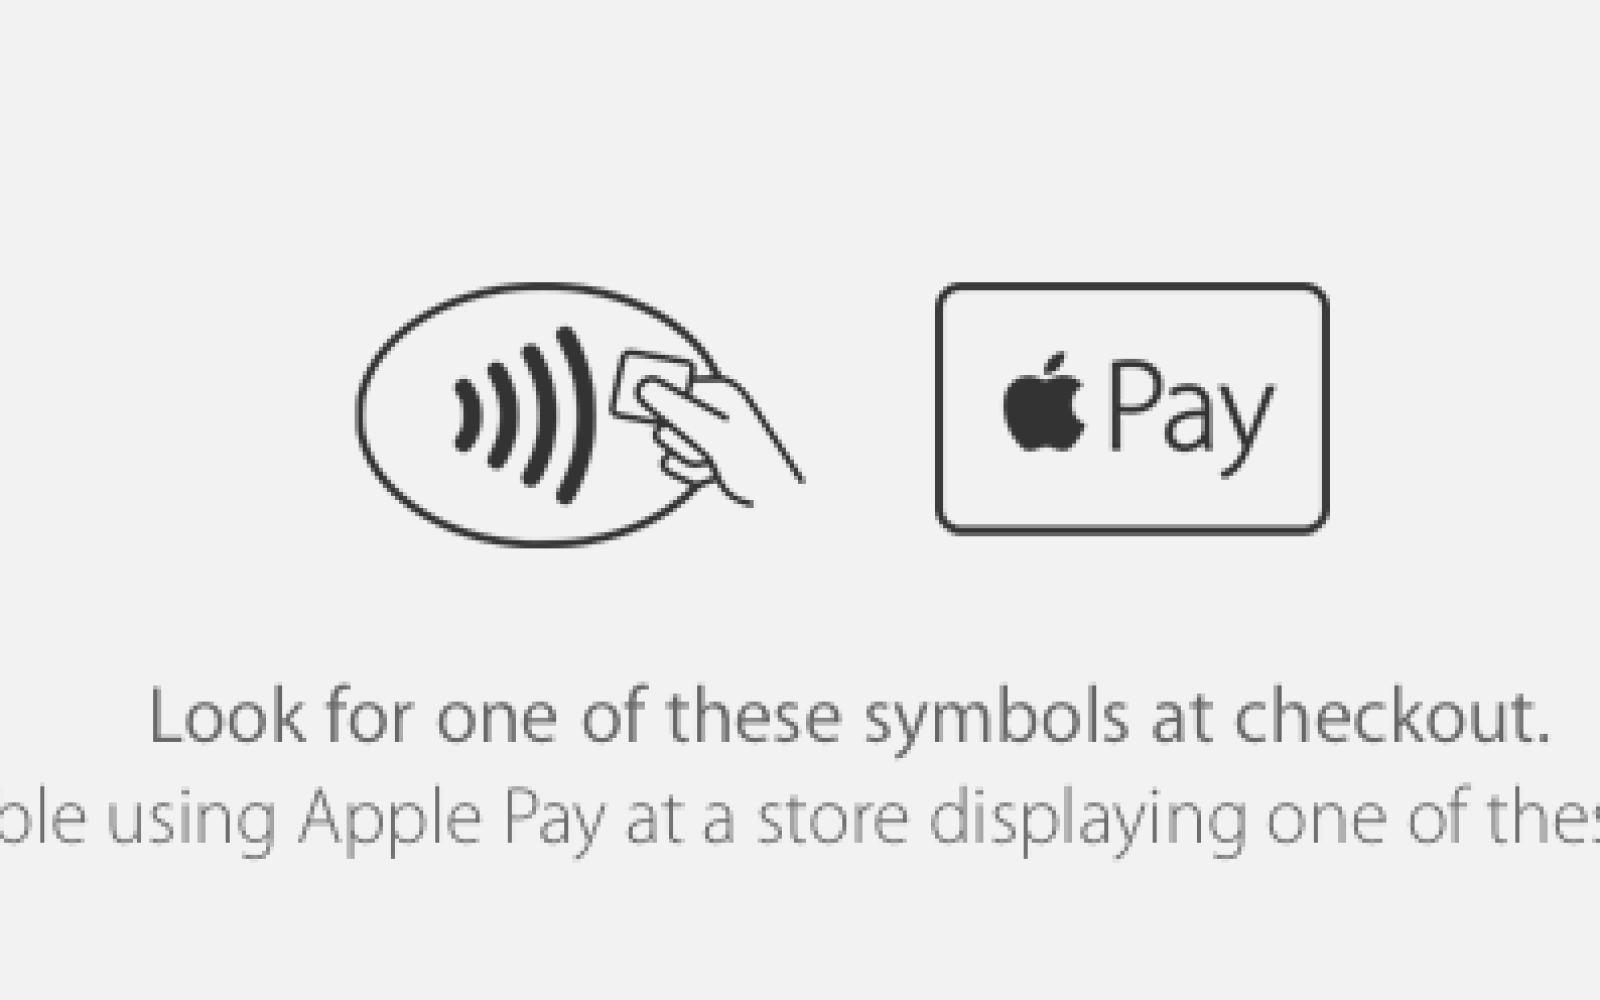 Apple Pay claimed 1% of November's digital payment dollars, new report says